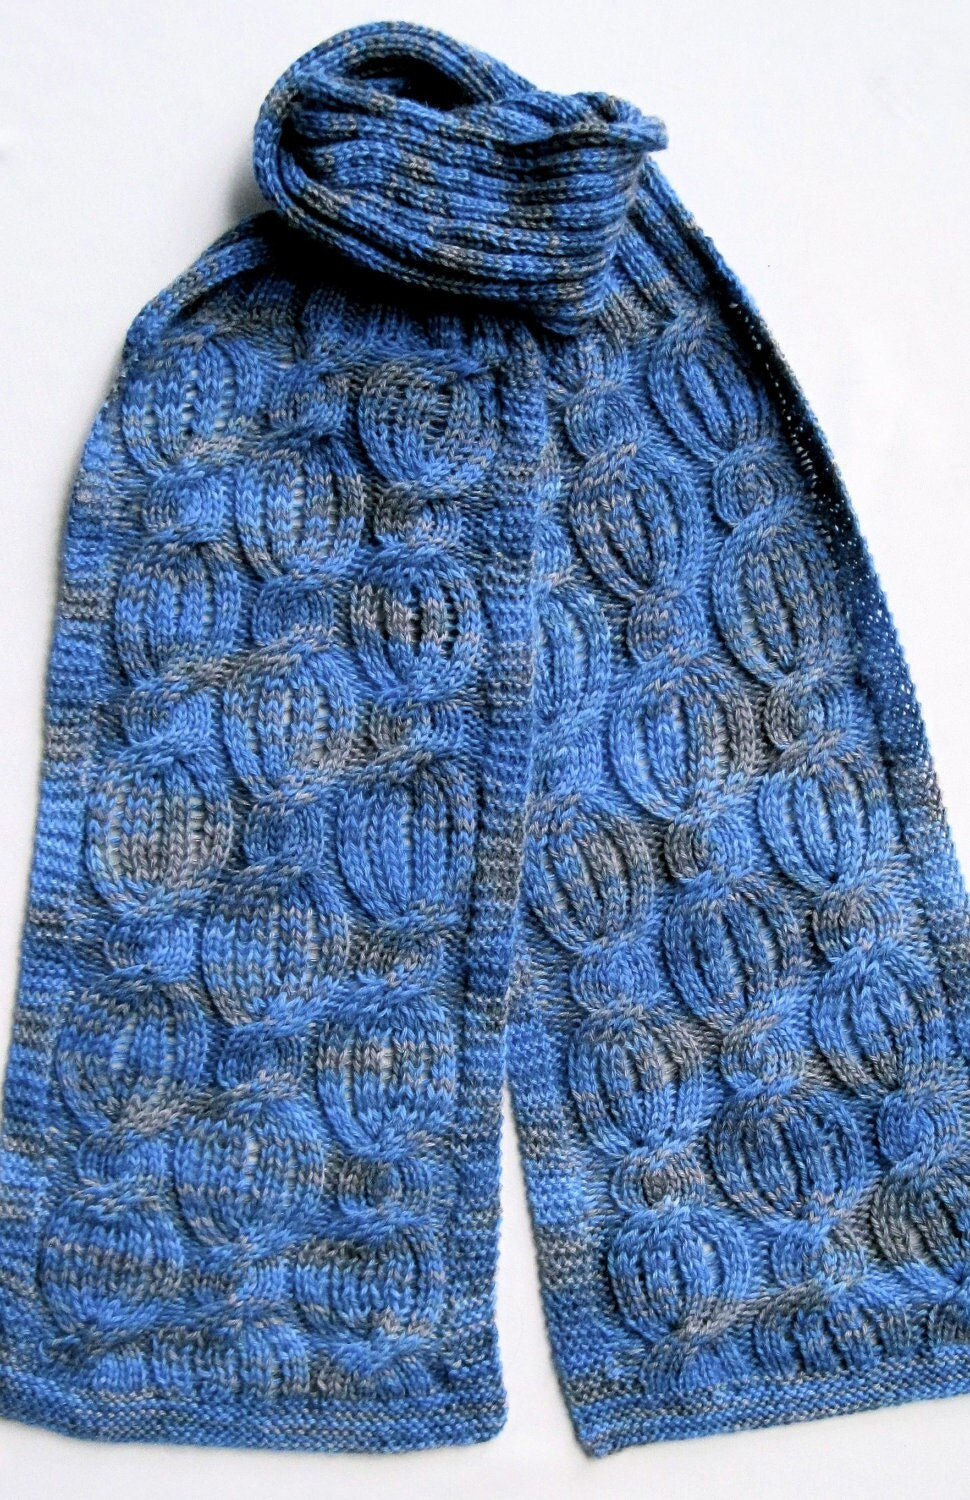 Knitting Stitch Patterns Scarf : Knit Scarf Pattern: Drop Stitch Cabled Turtleneck Scarf